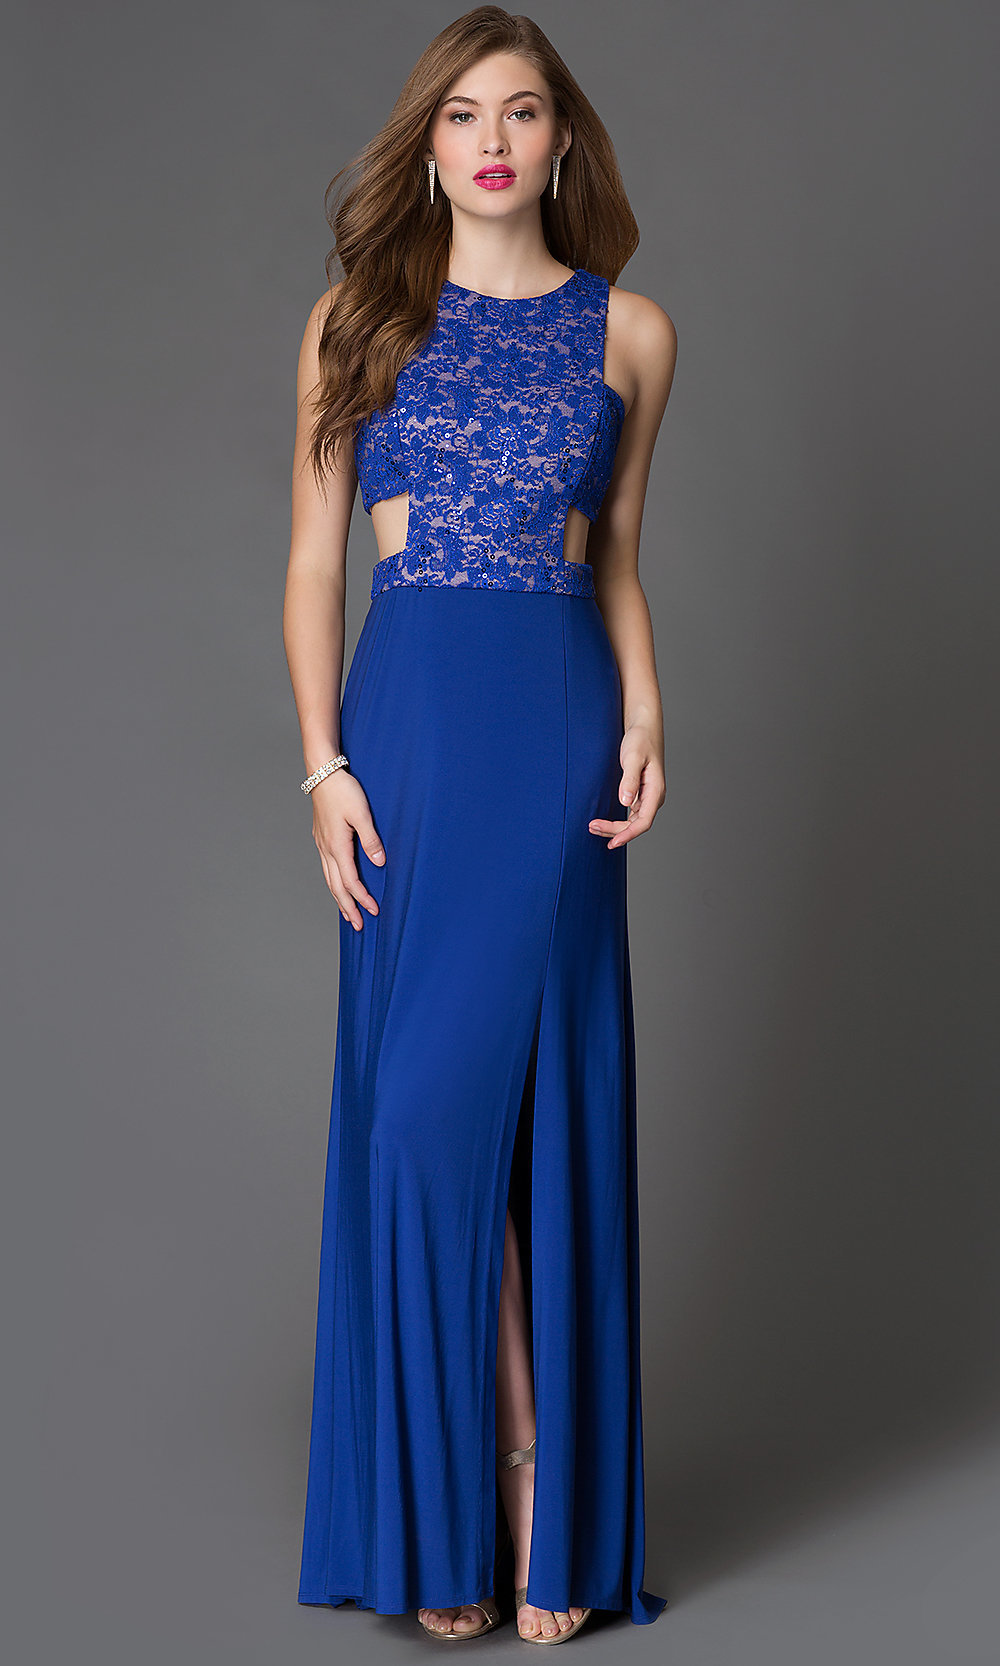 Intriguing Size Blue Homecoming Dresses Pinterest Hover To Zoom Long Blue Prom Dress Promgirl Blue Homecoming Dresses wedding dress Blue Homecoming Dresses